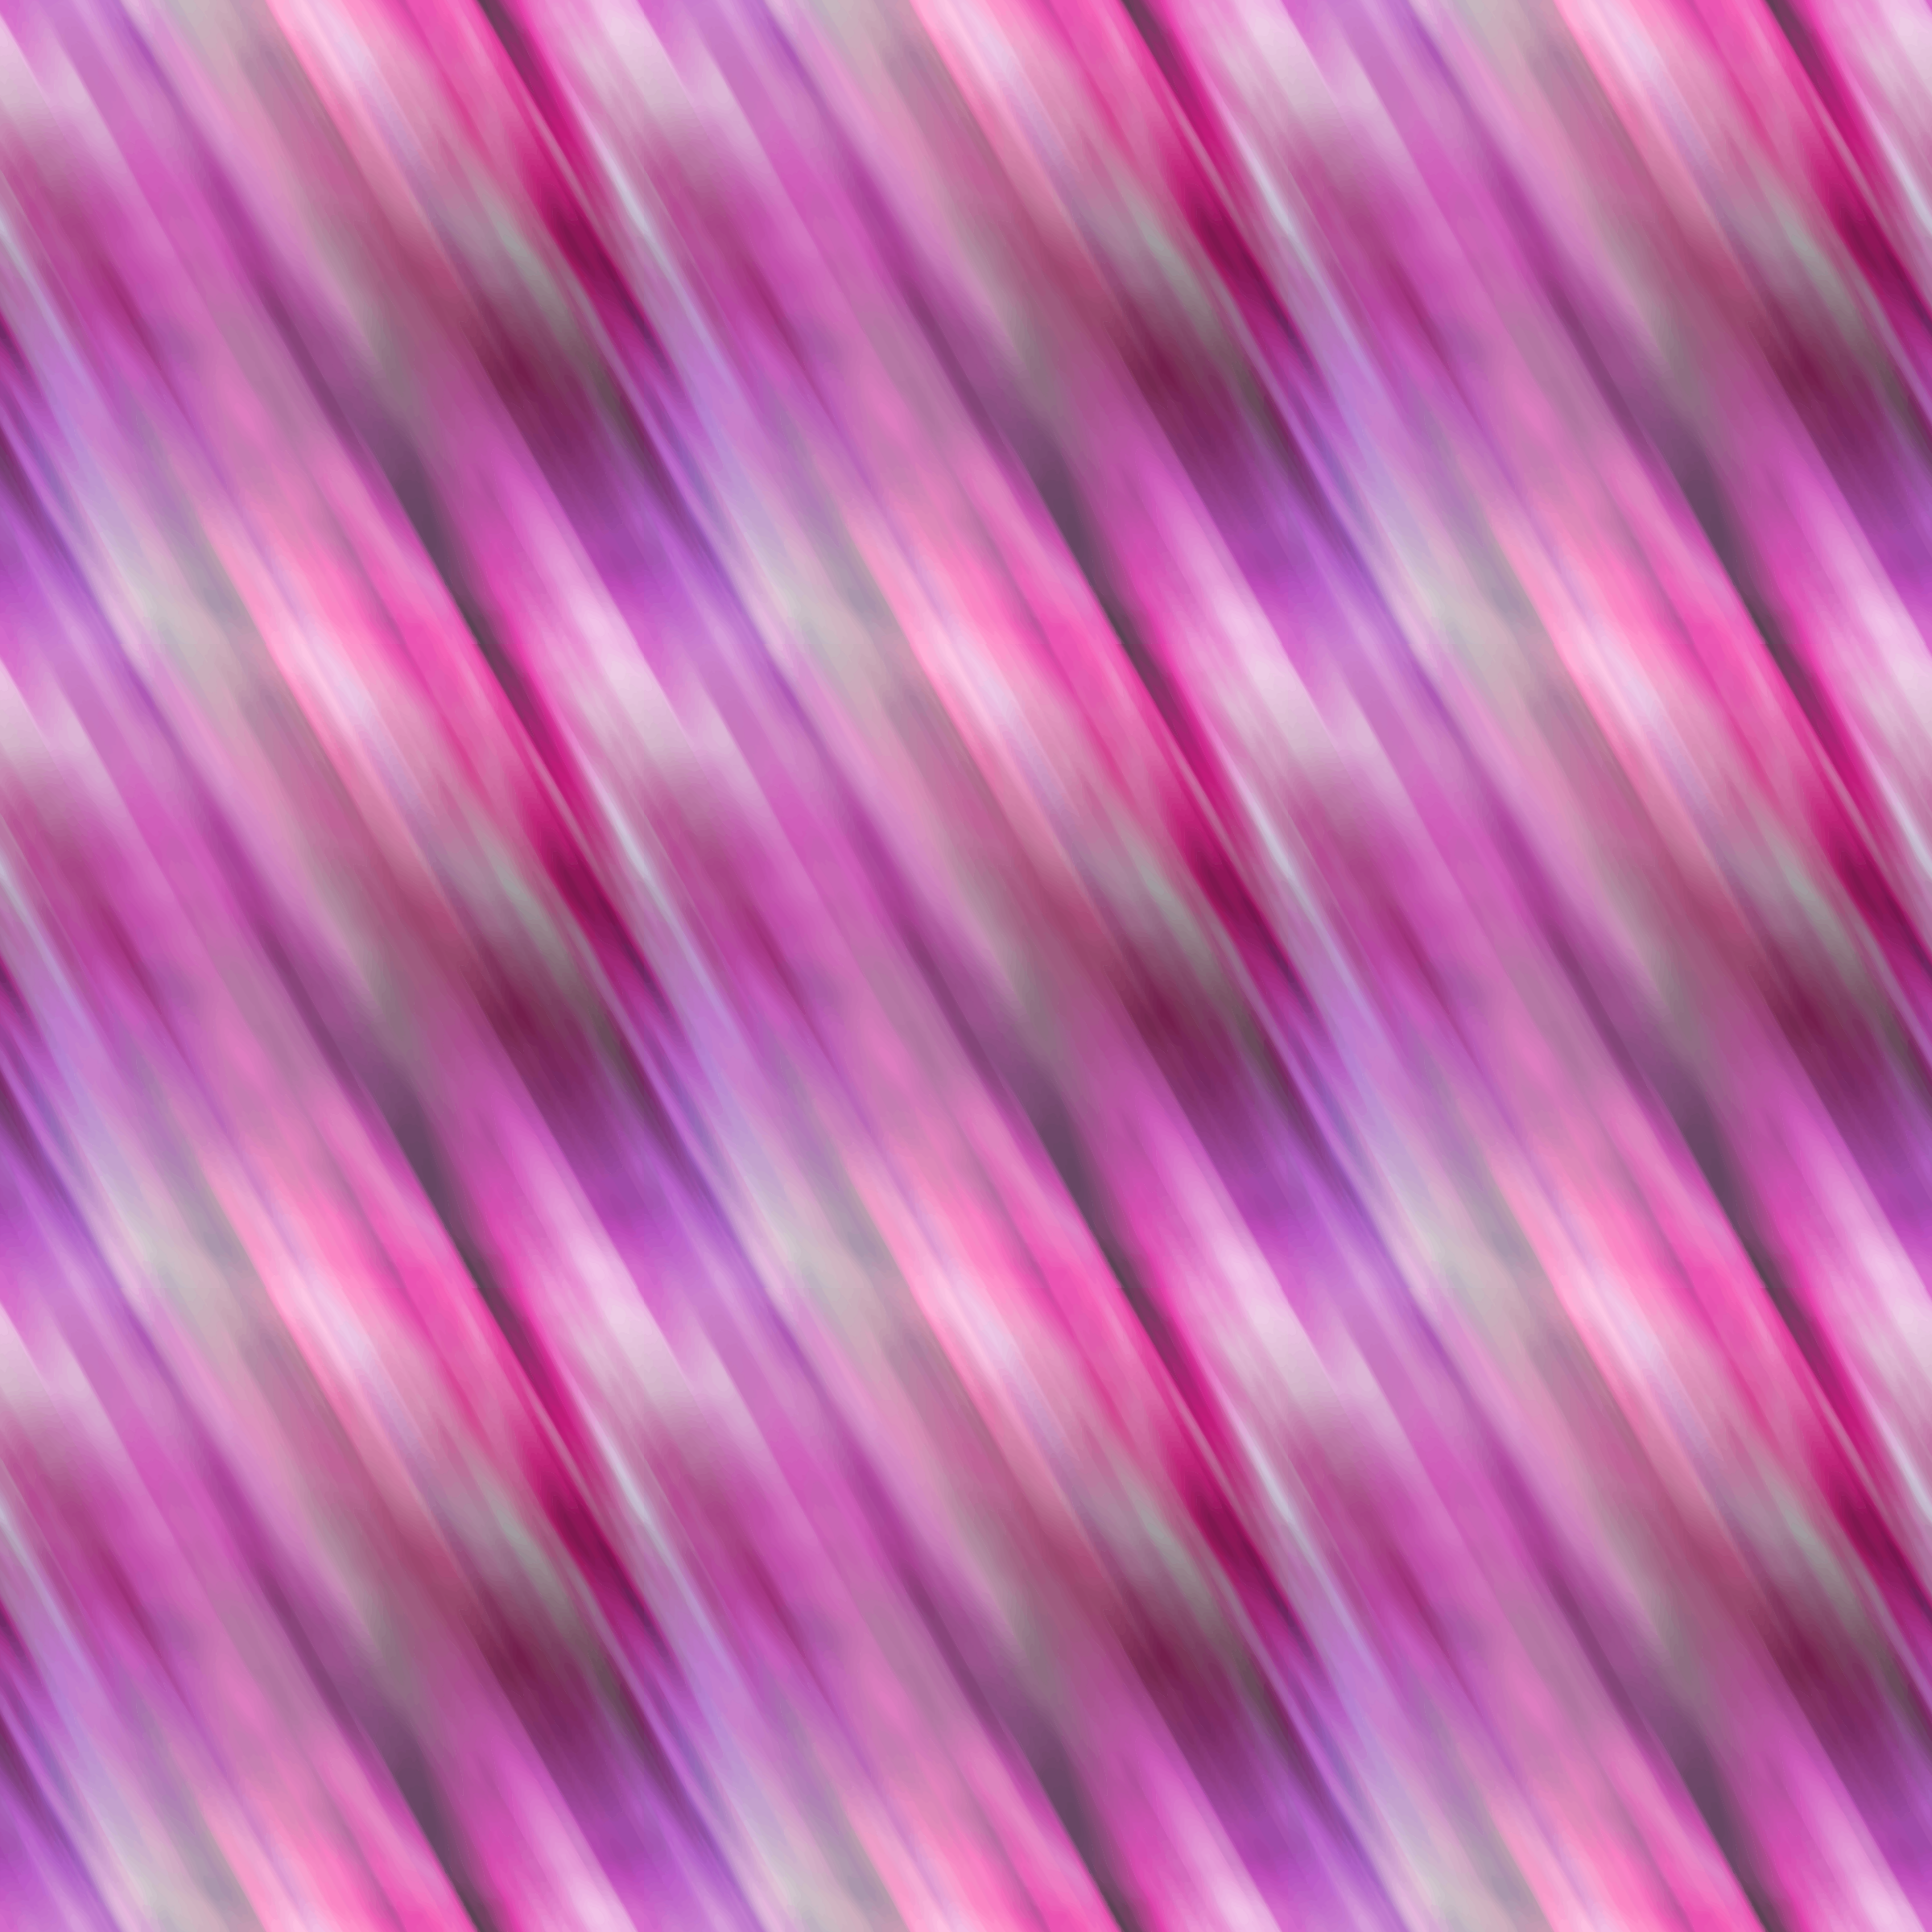 Background pattern 226 (colour 6) by Firkin